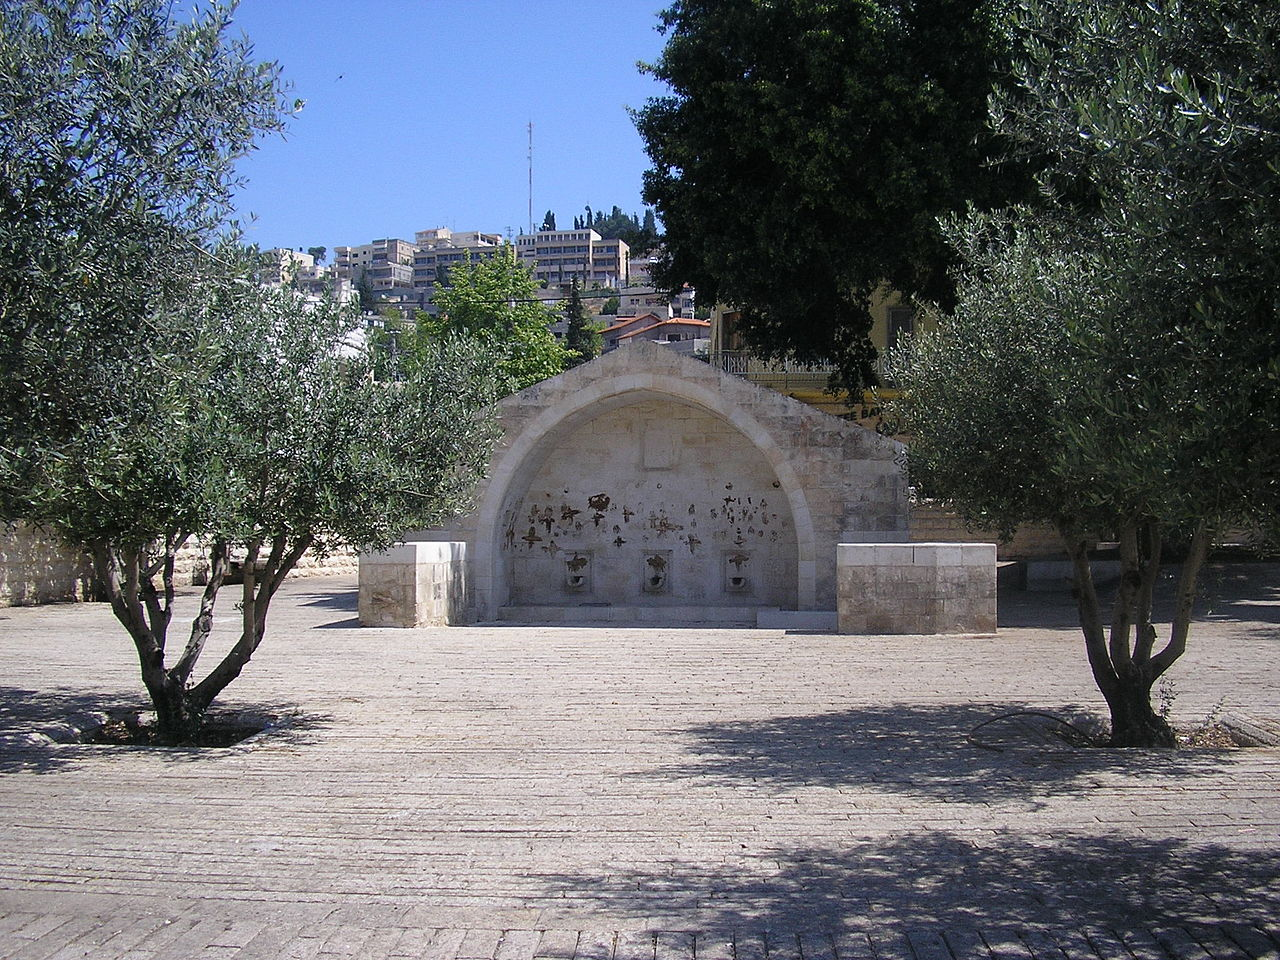 St. Mary's Spring in Nazareth